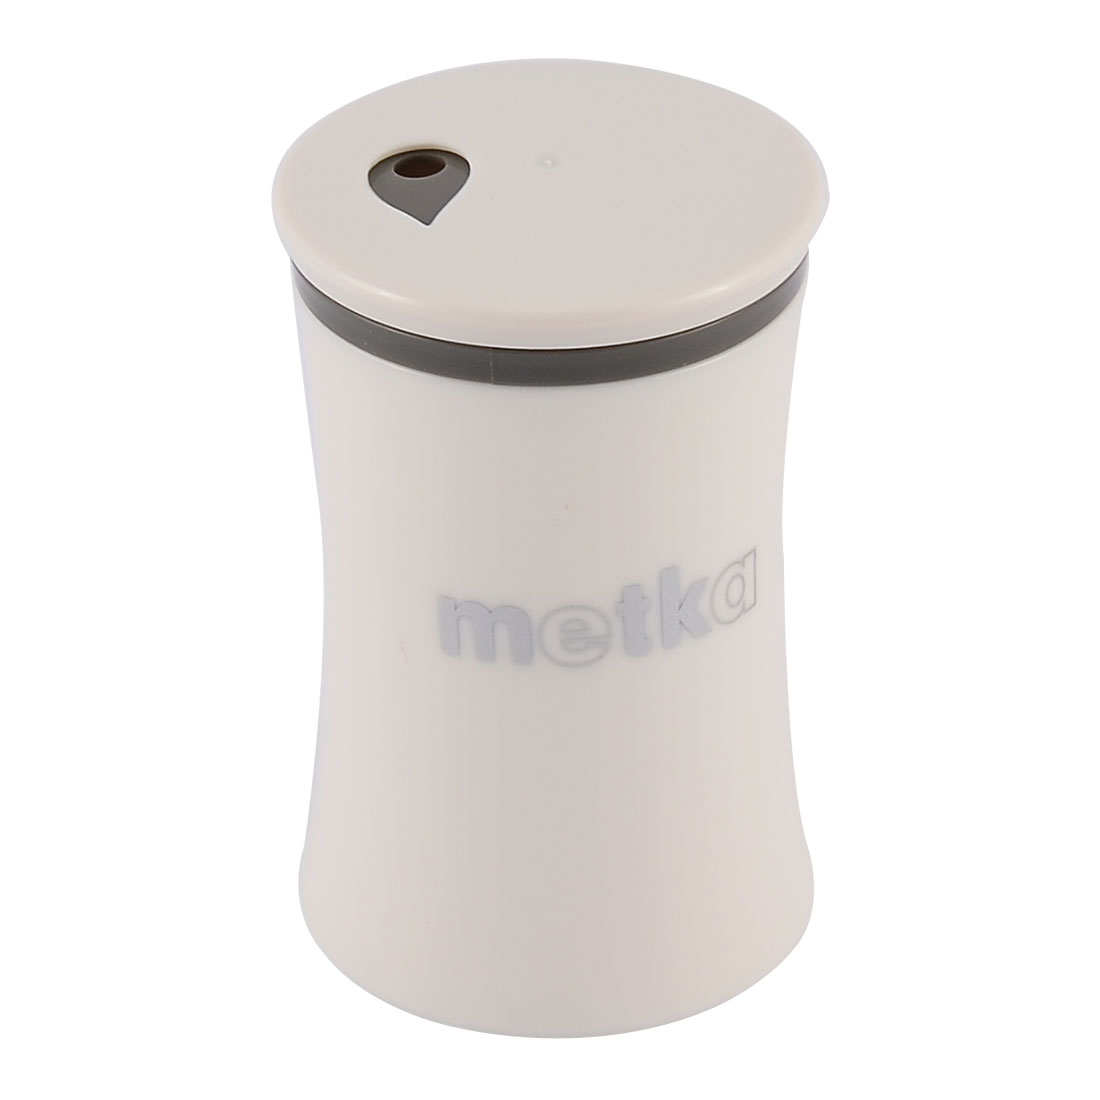 Household Coffee Shop Plastic Cylinder Shaped Toothpick Holder Container Storage Box Case White